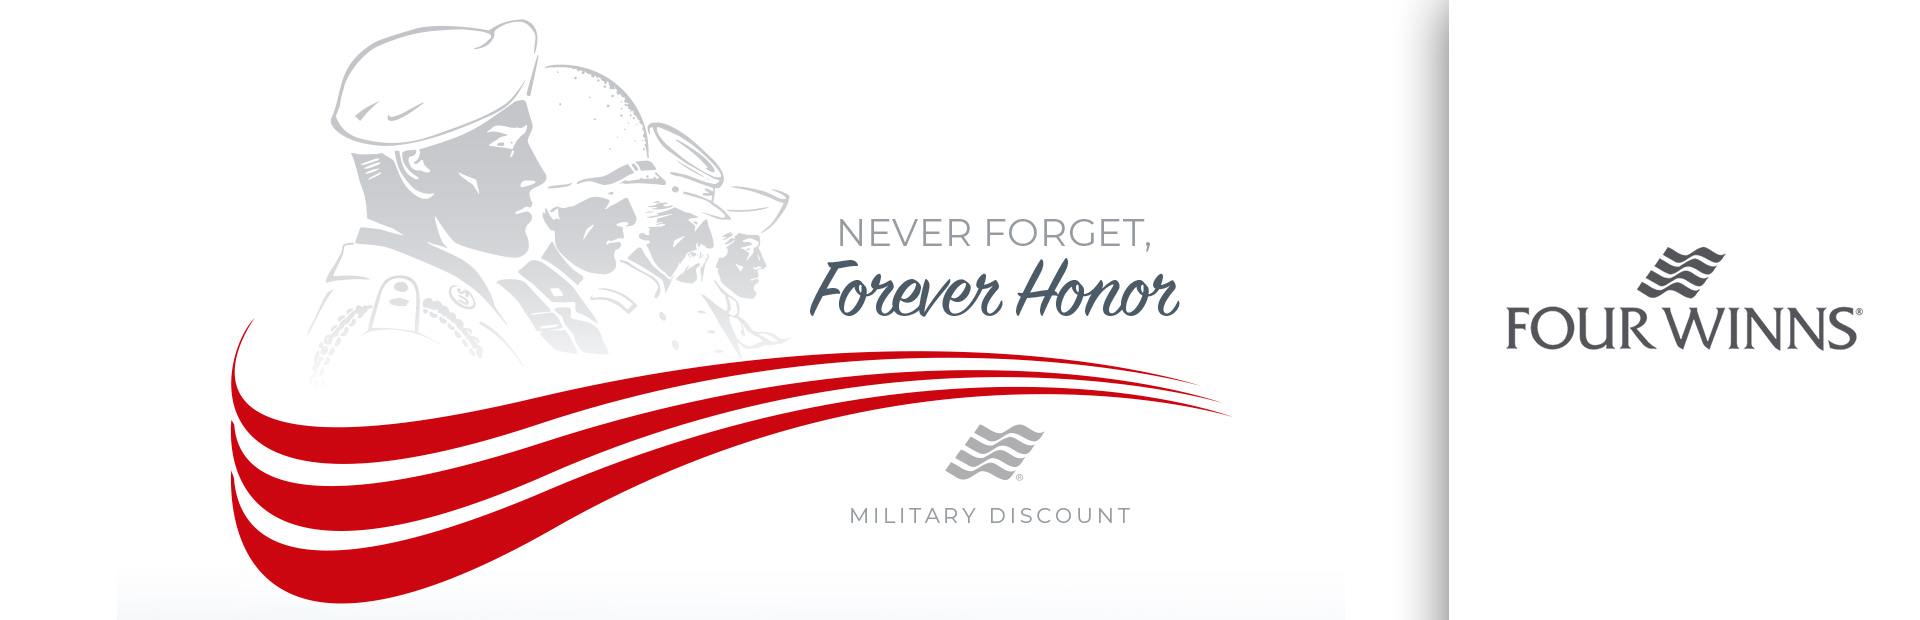 Four Winns: Never Forget, Forever Honor Military Discount